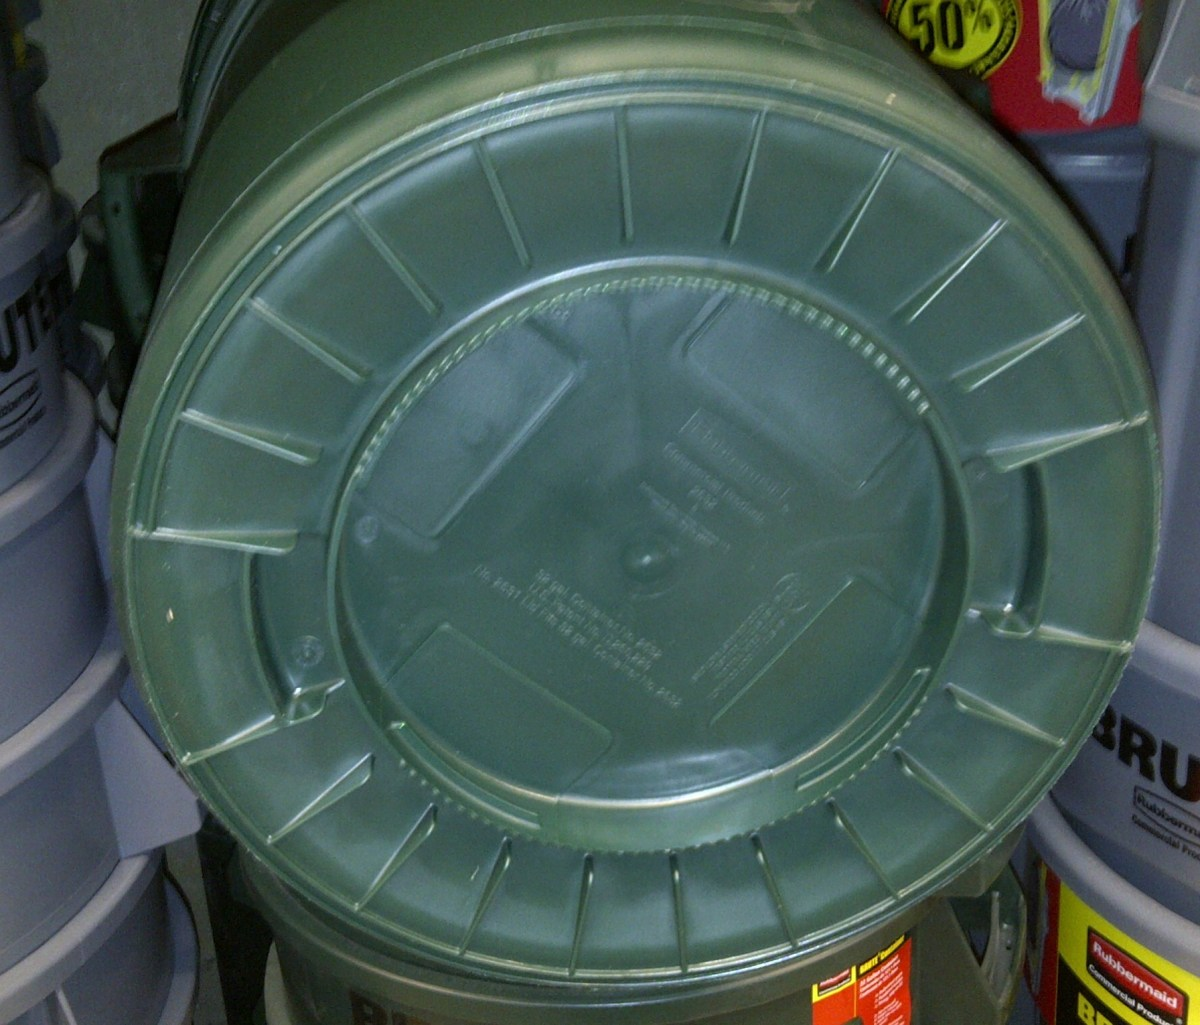 Plastic garbage can with ridges on bottom to resist wearing holes though the bottom